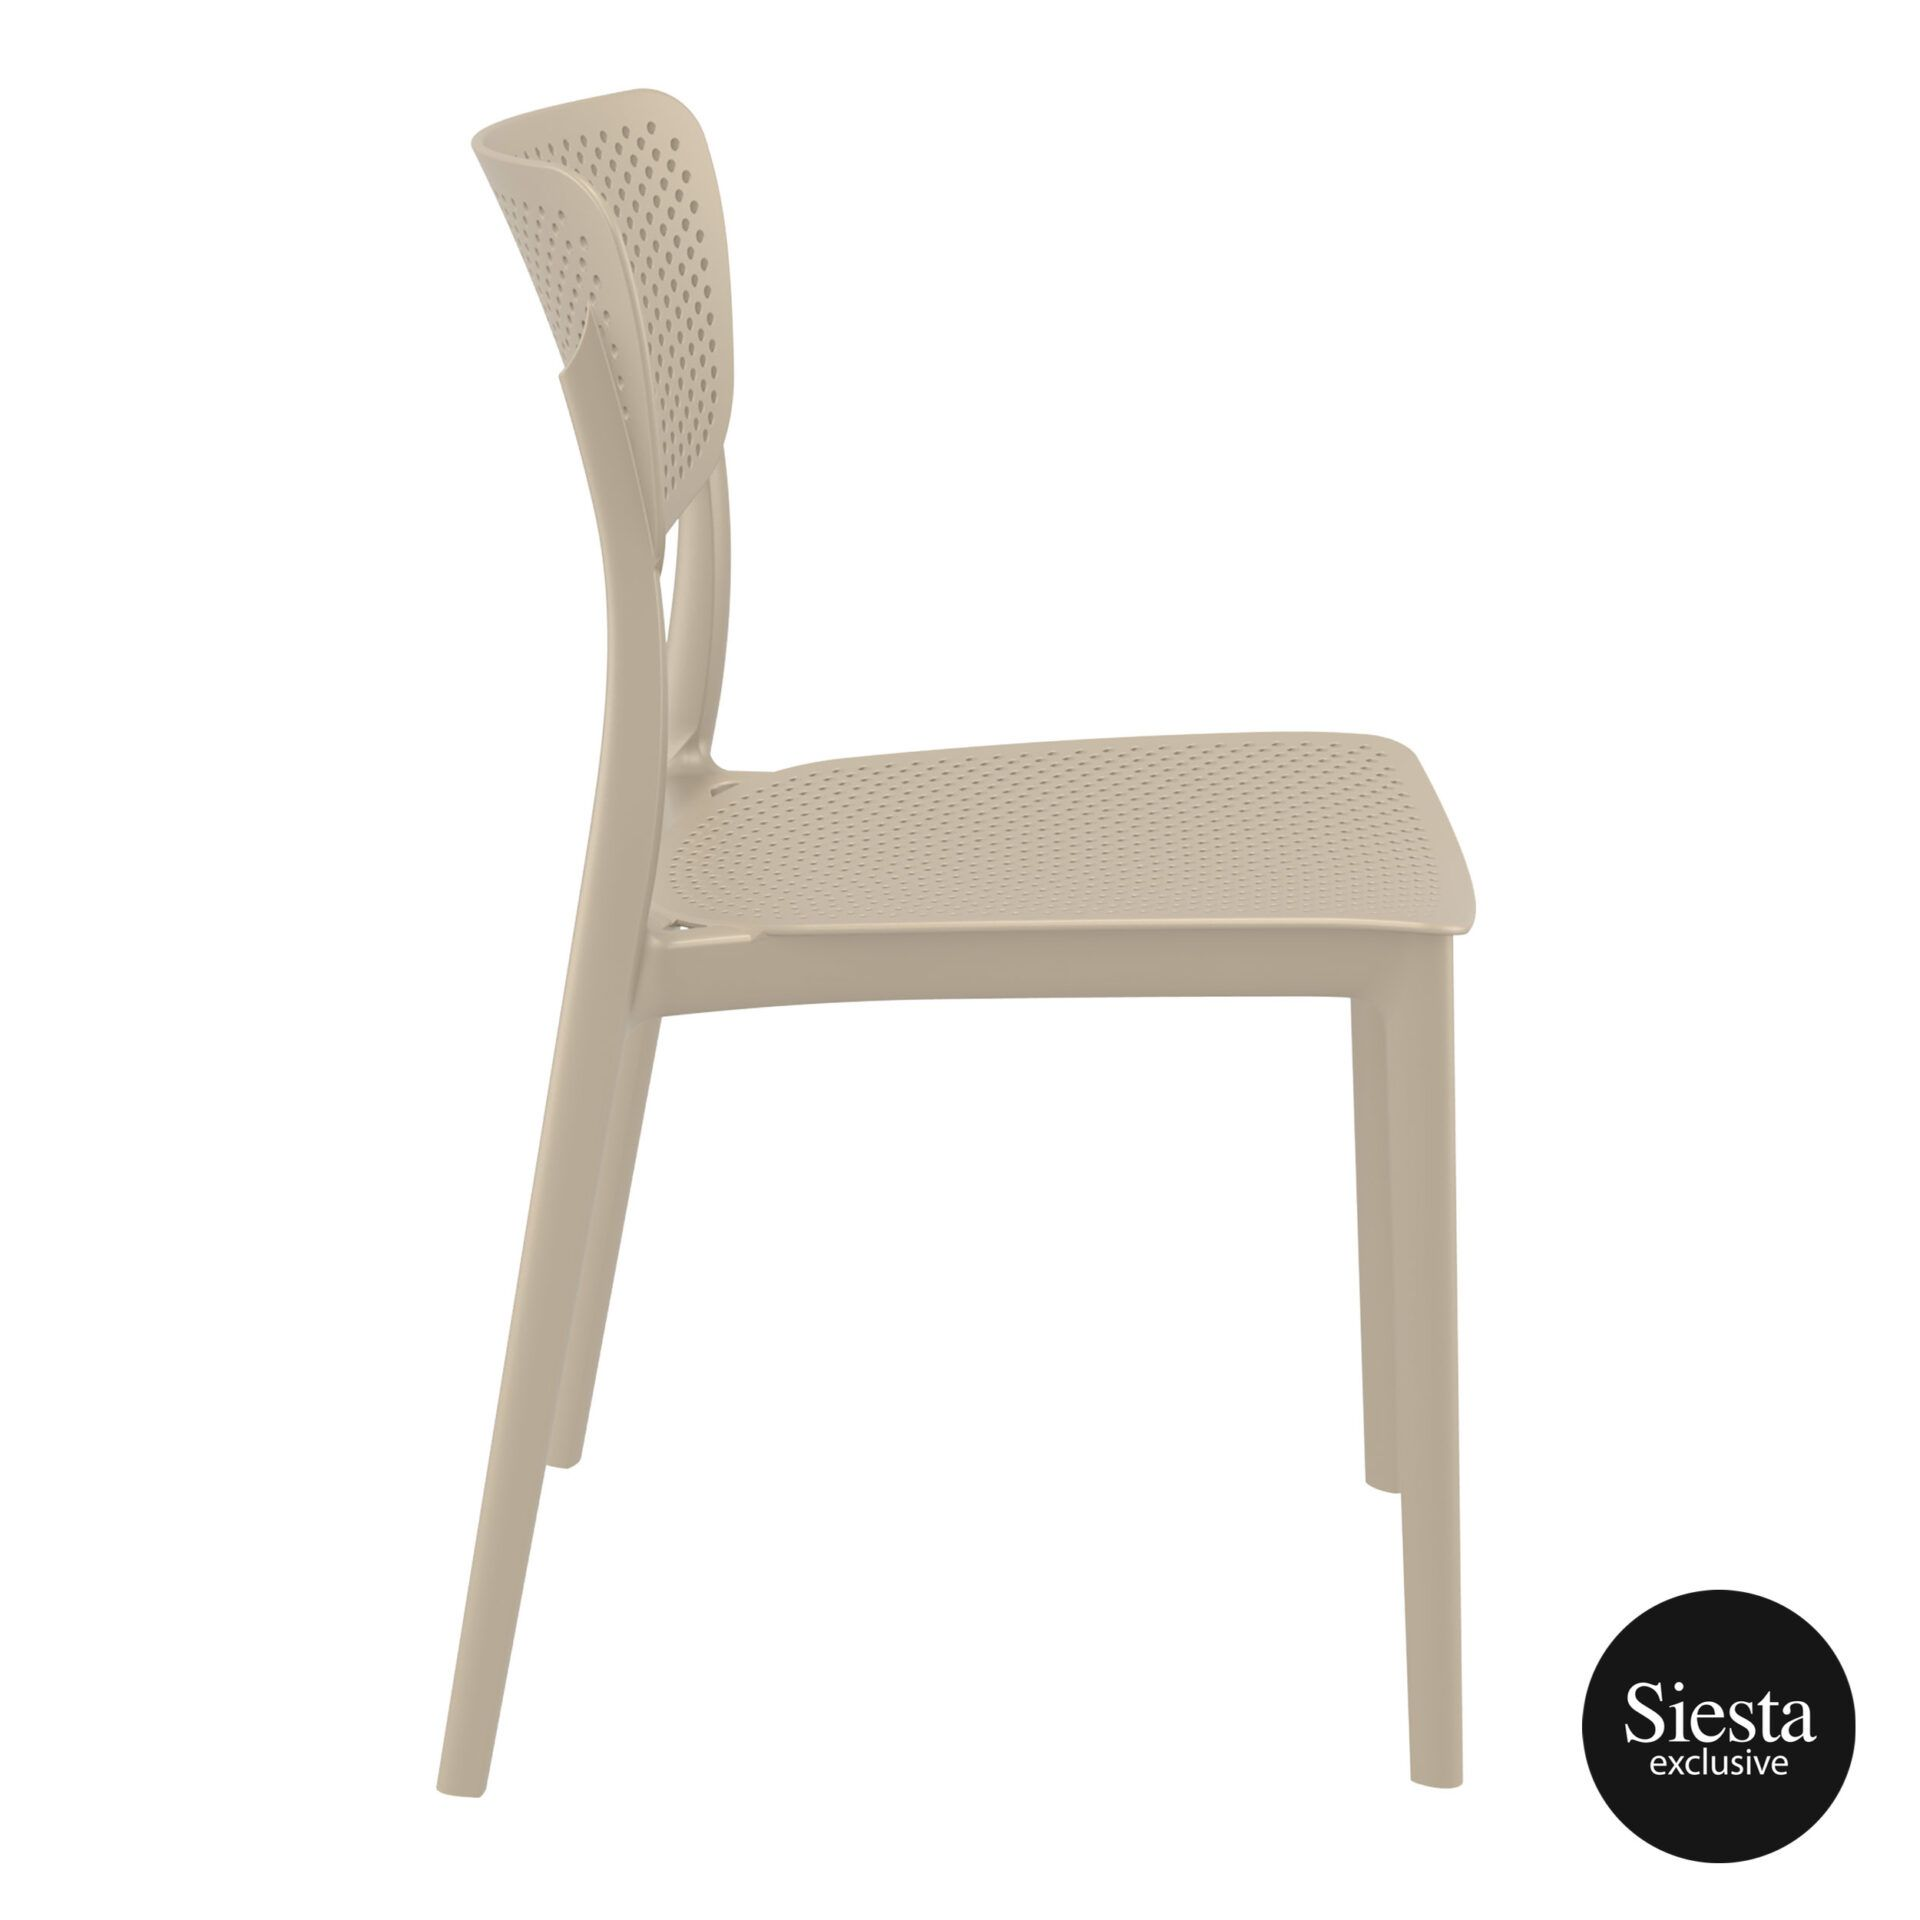 polypropylene hospitality seating lucy chair taupe side 1